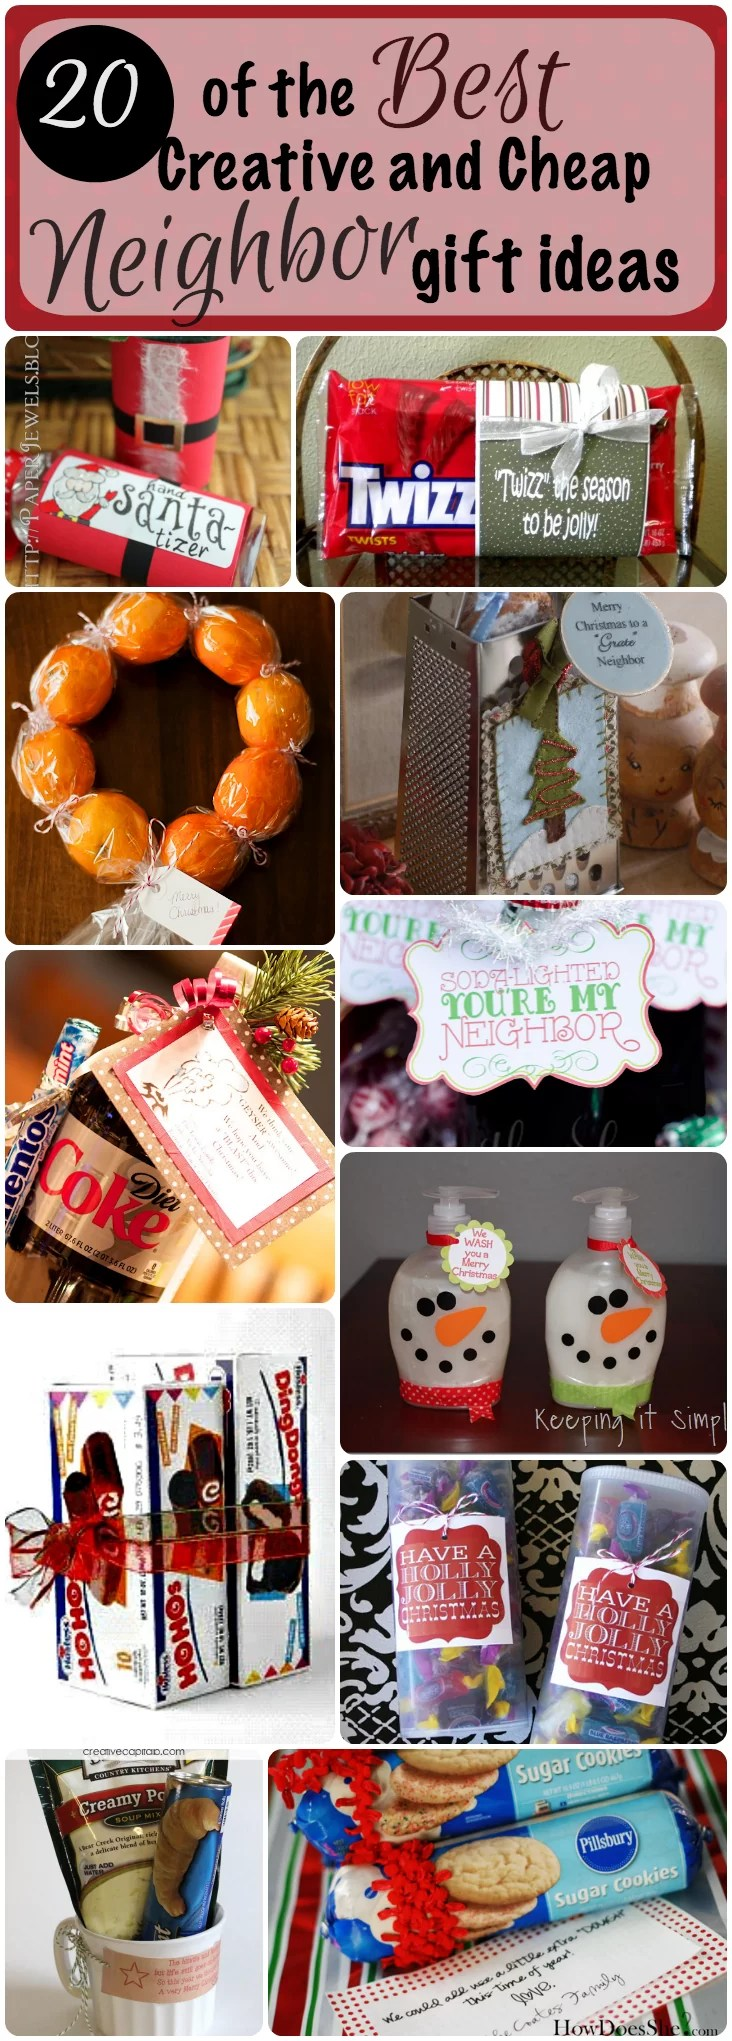 20 of the best creative and cheap neighbor gifts for christmas for Unique ideas for christmas gifts